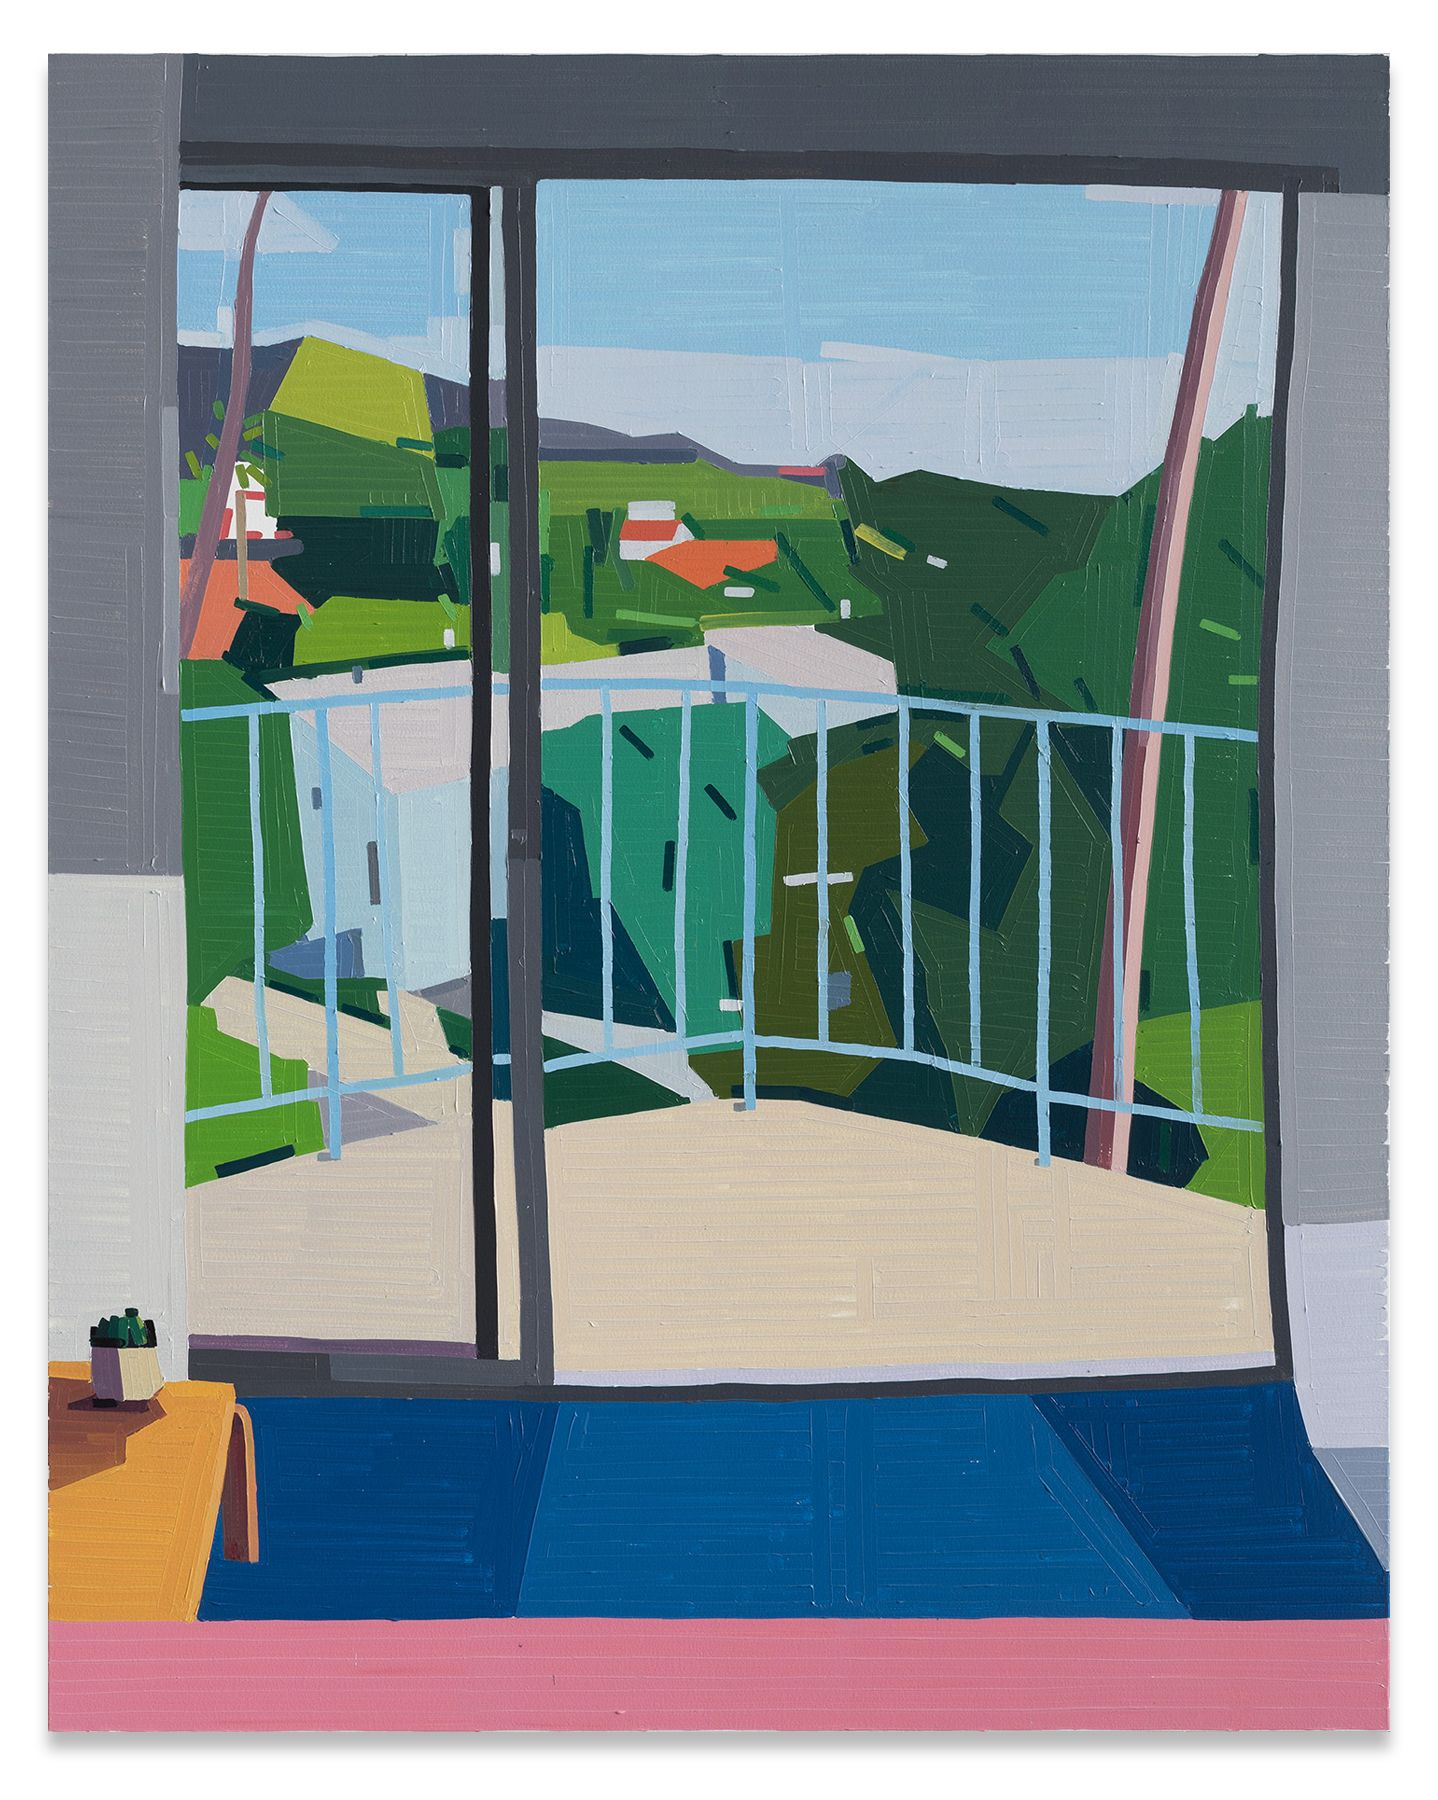 Guy Yanai, The Standard West Hollywood, 2019, Oil on canvas, 59 x 47 1/4 inches, 150 x 120 cm, MMG#30928